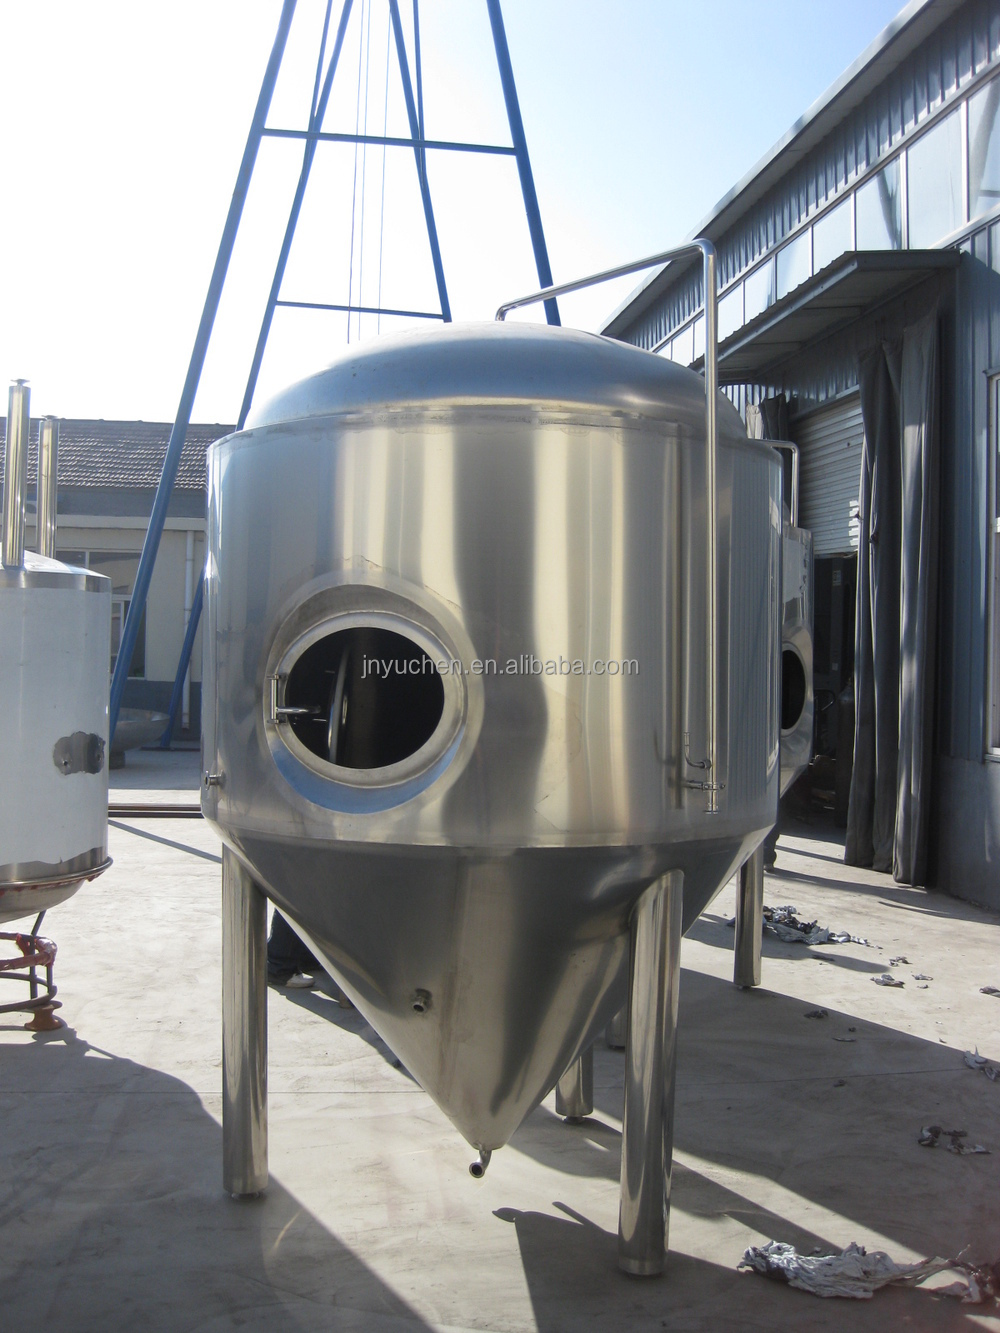 10 Barrel Brewing System For Beer Production Buy 10